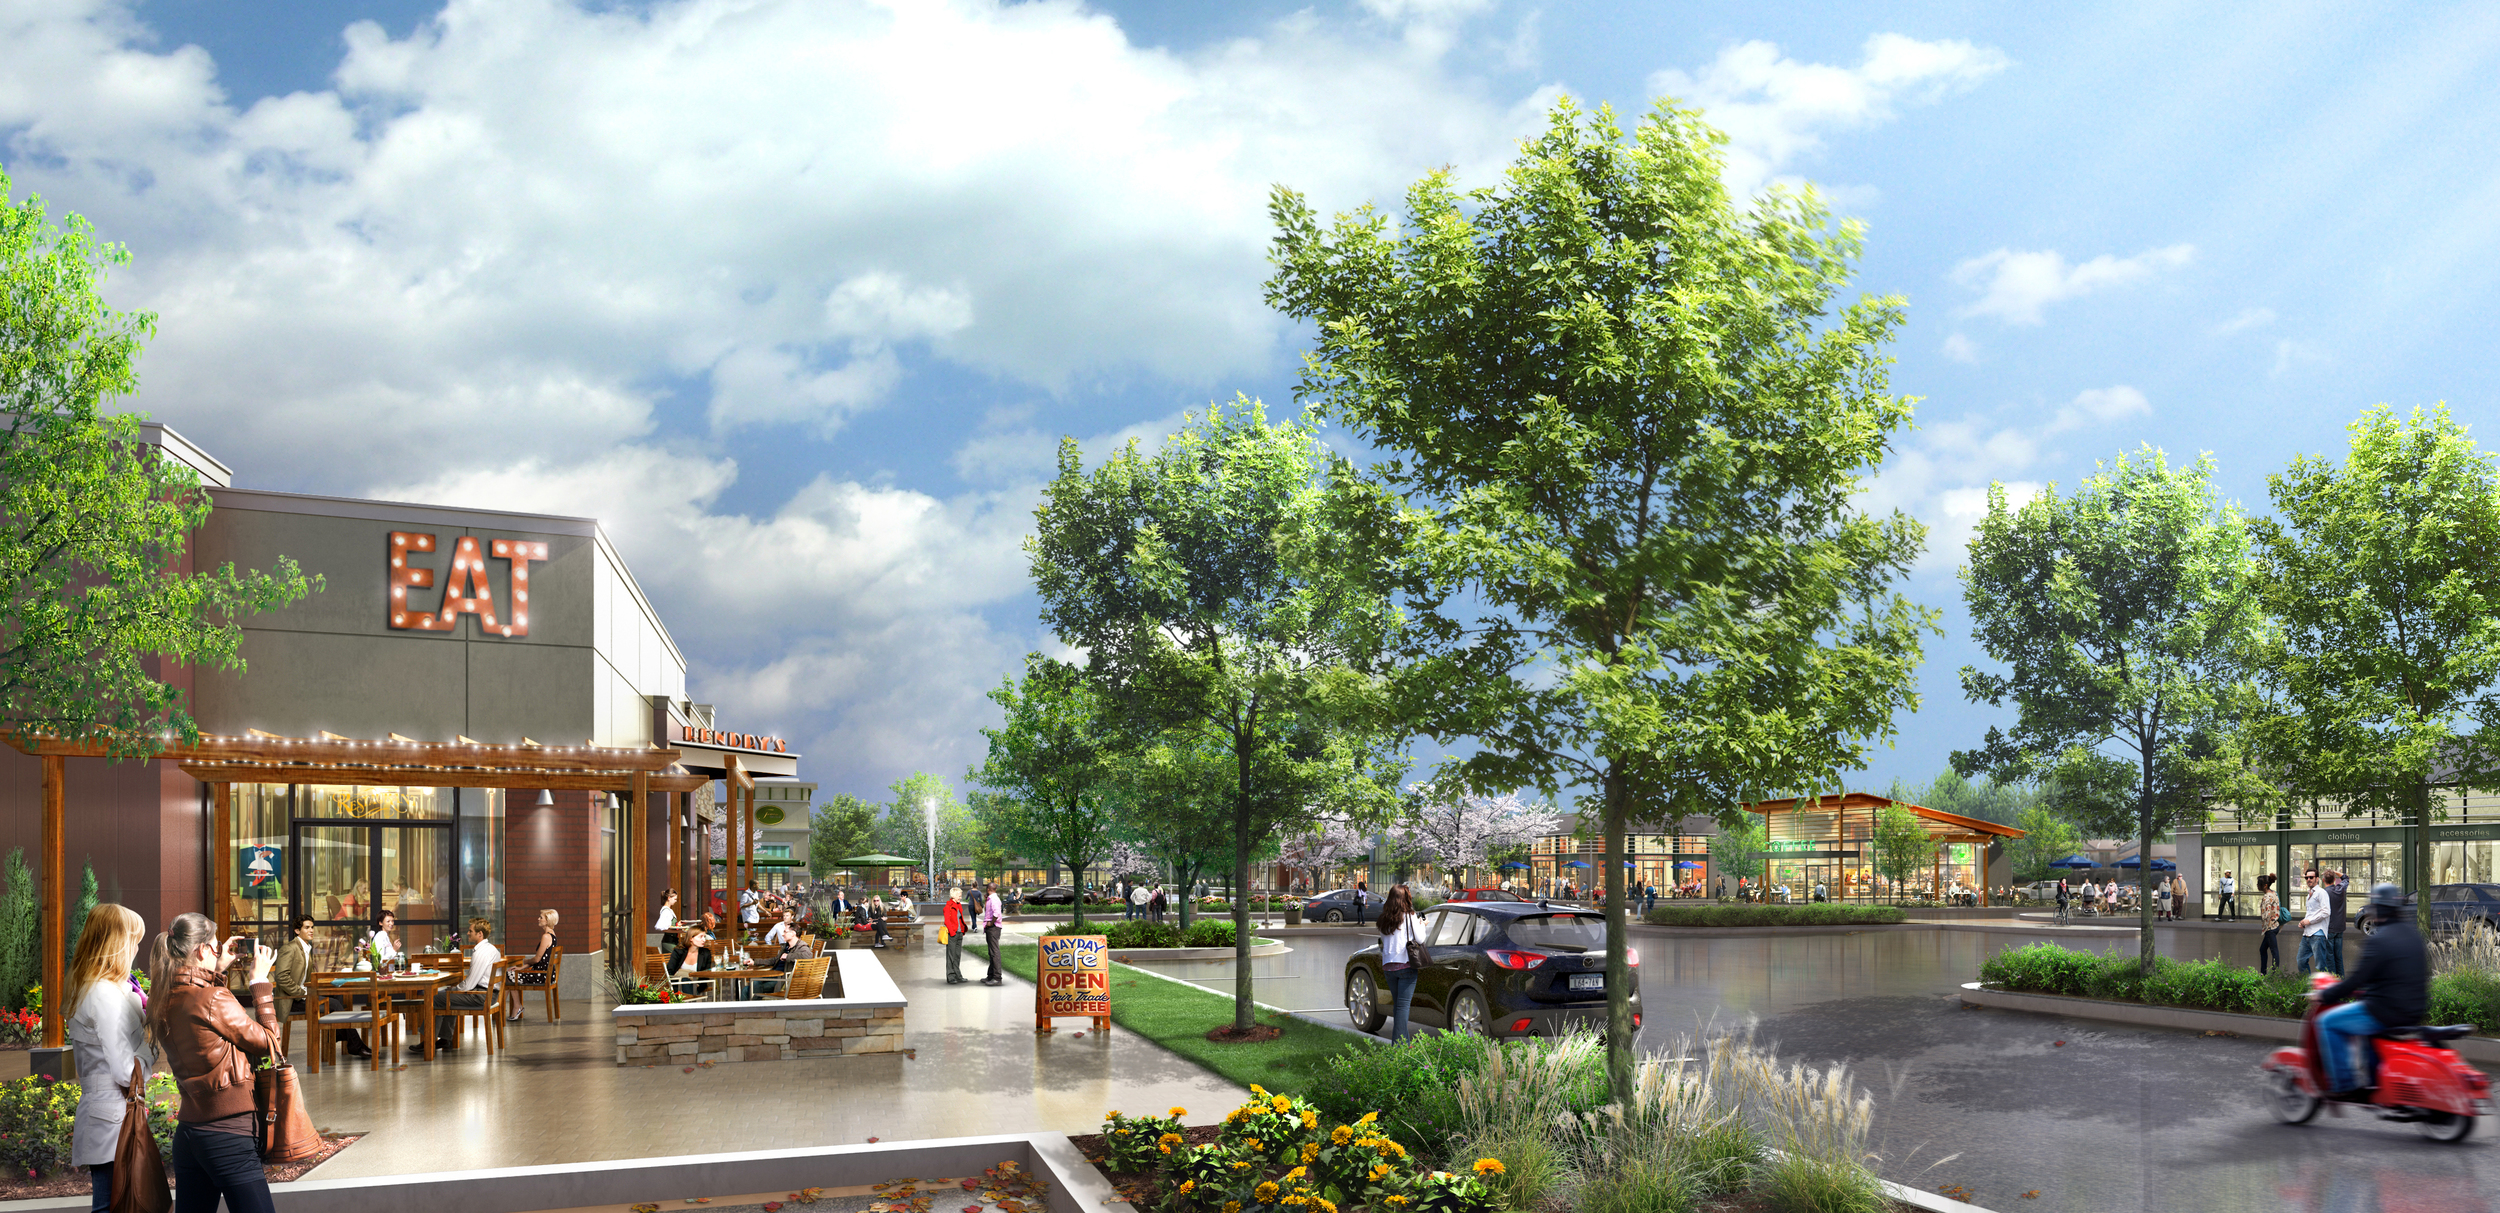 BROAD HOLLOW COMMONS  New York |  Client:  Streetsense.